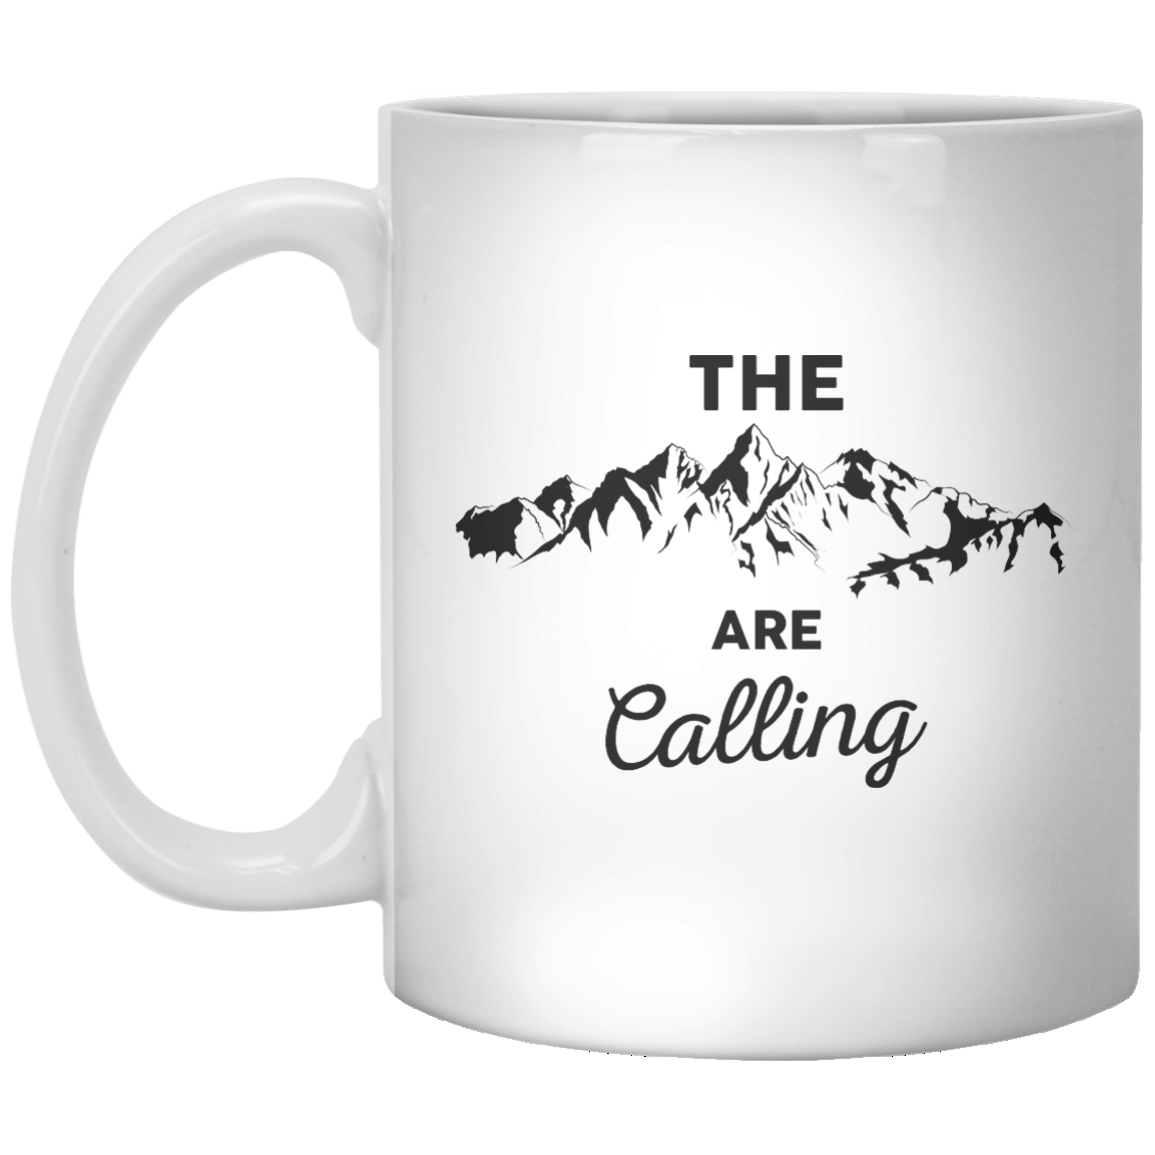 The Are Calling - Shirtoopia